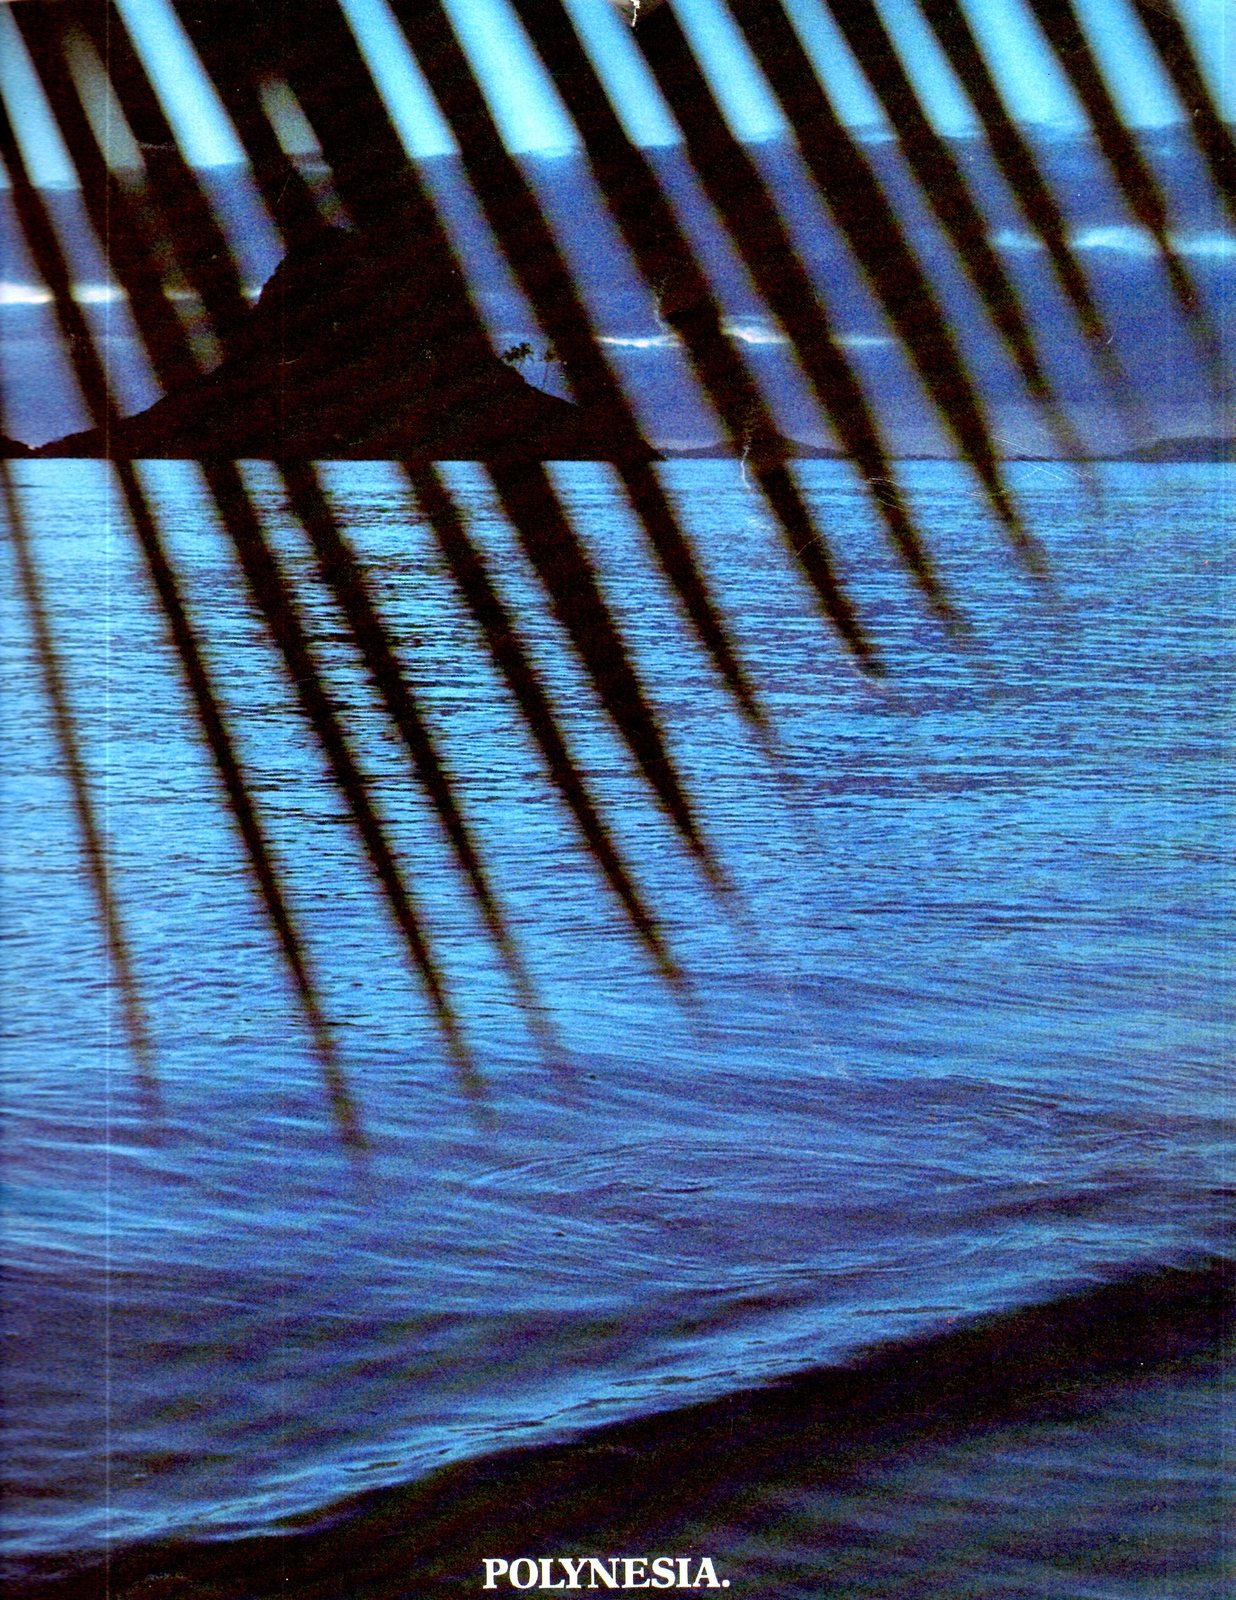 Polynesia - A Day In The Life Of The South Pacific (Book)